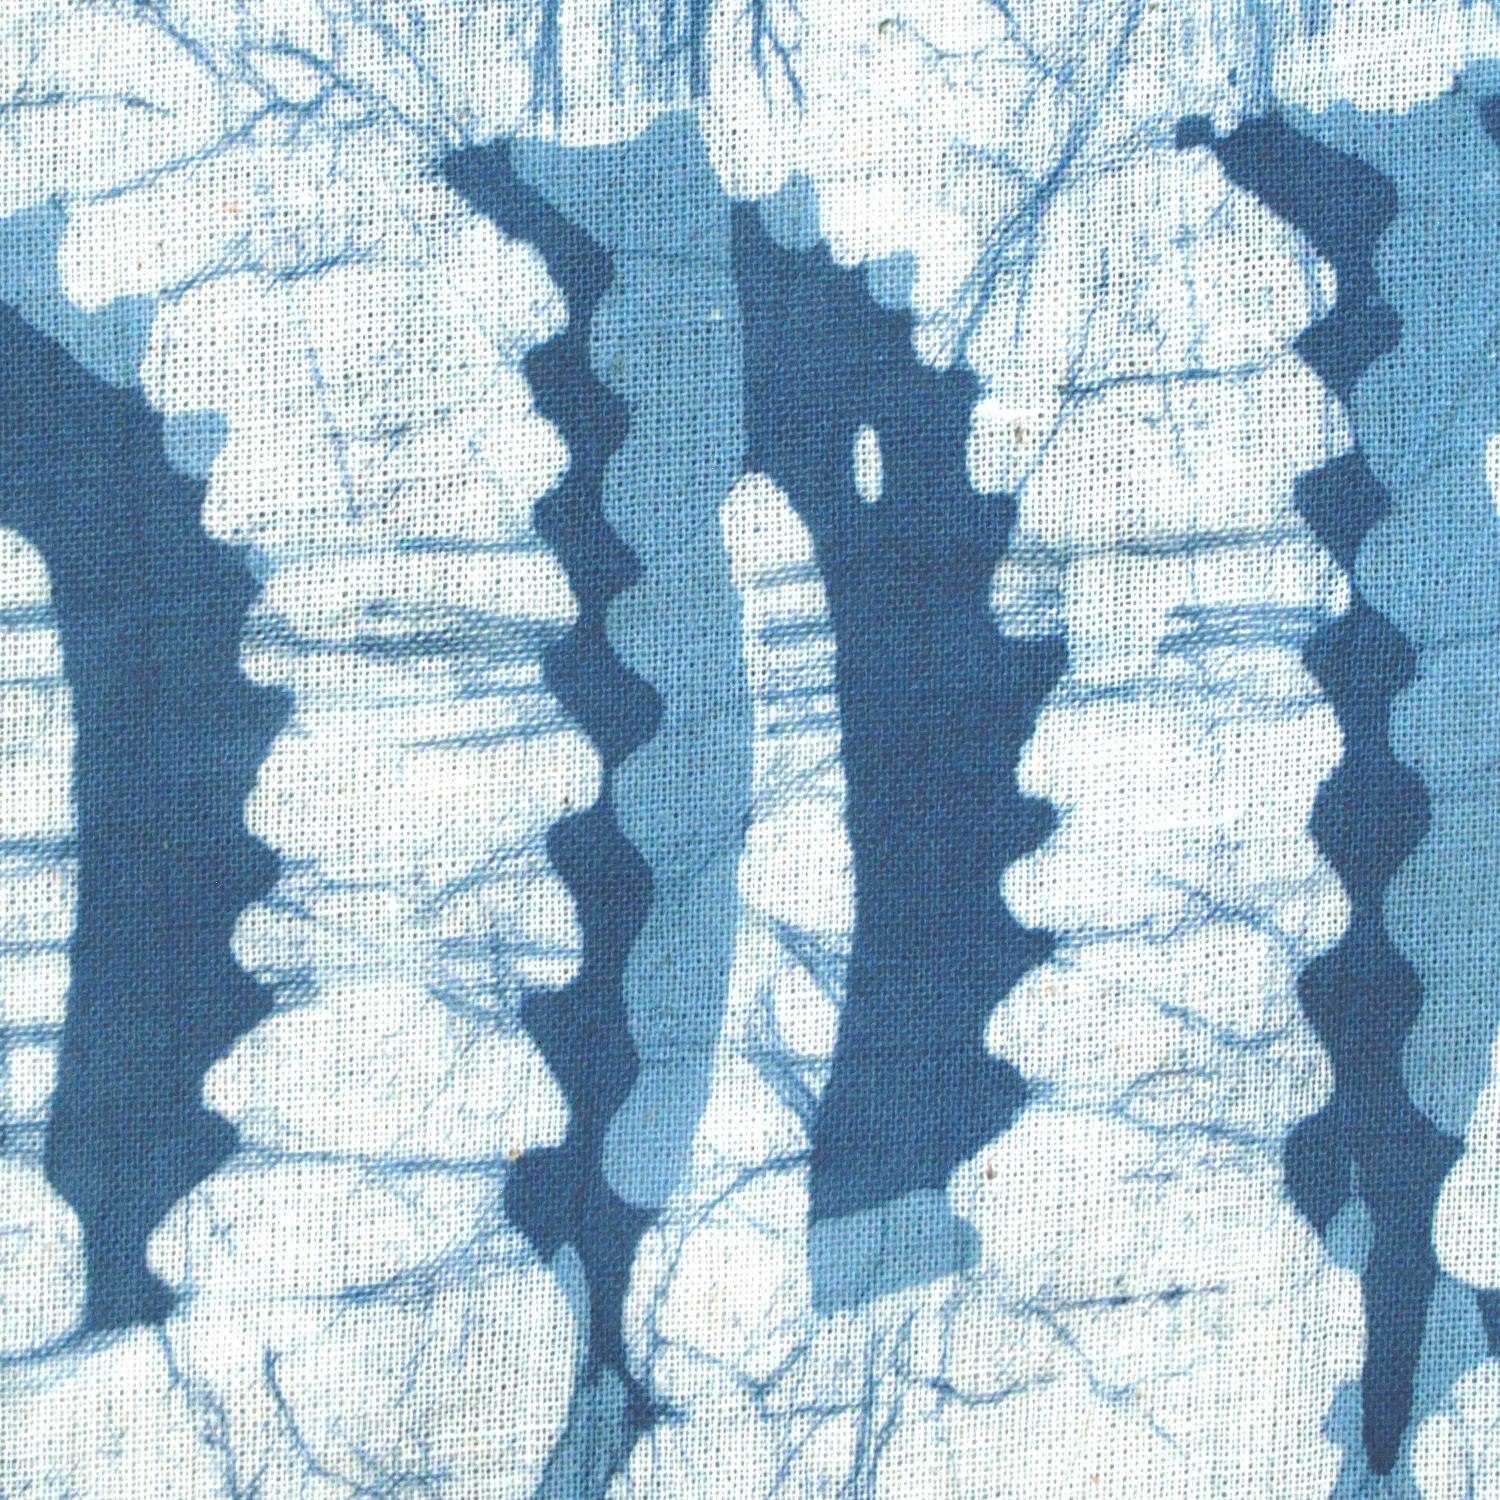 2 - SHA12 - 100% Block-Printed Batik Cotton Fabric From India - Batik - Blue Banana Leaves - Close Up